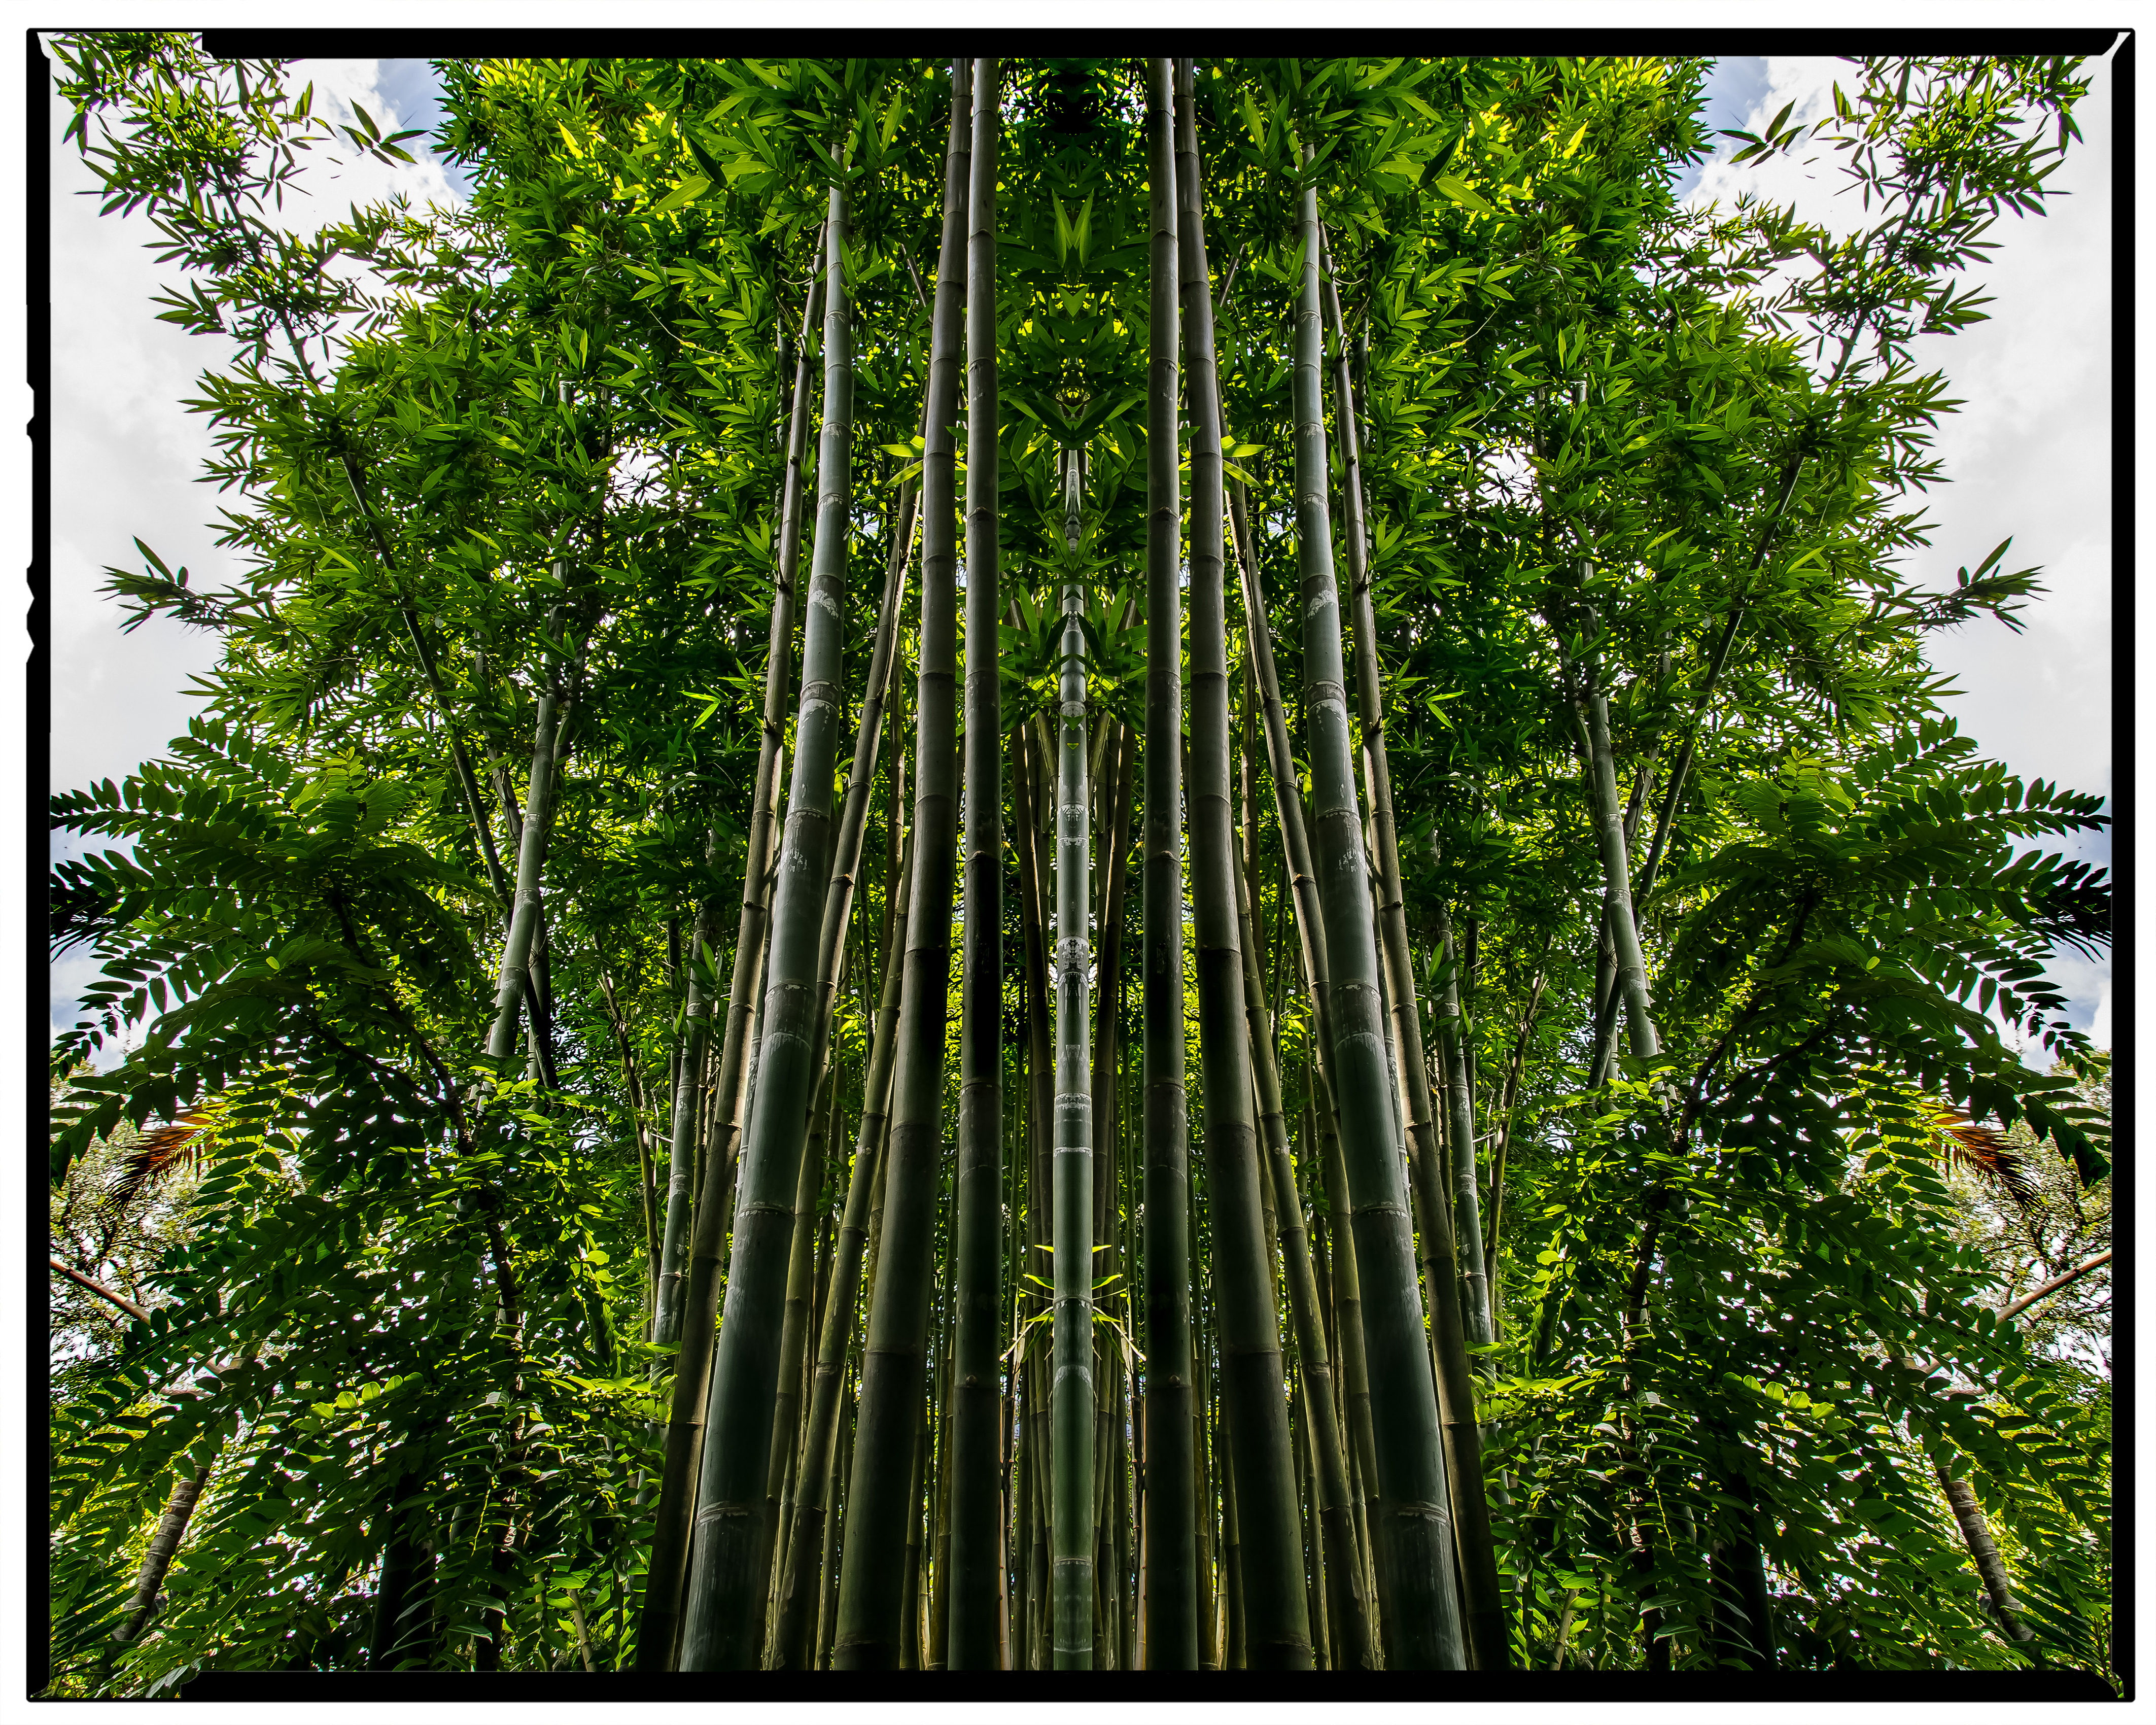 Bamboo Spires, 2019